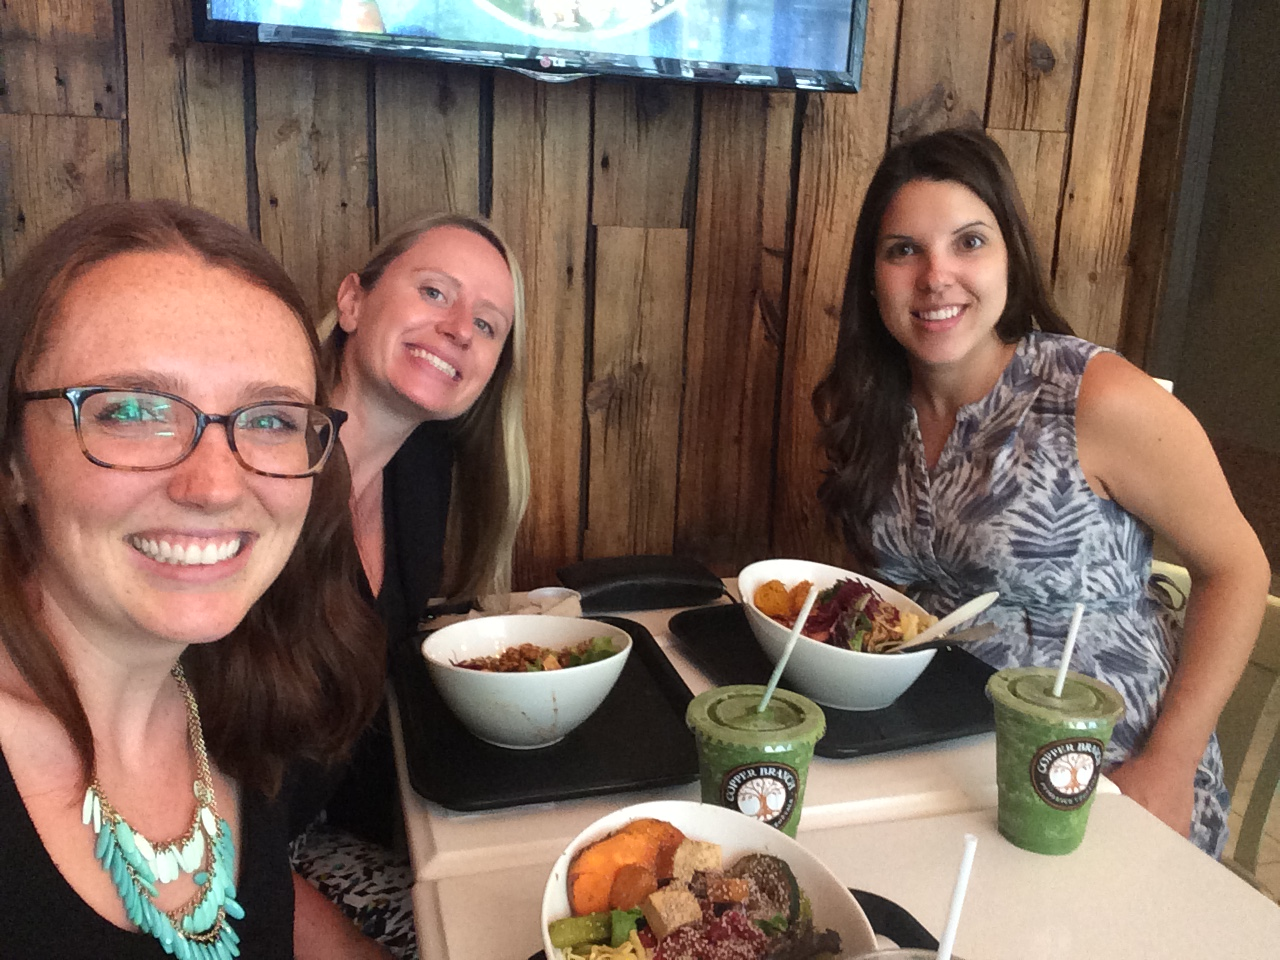 Lunch with my work ladies